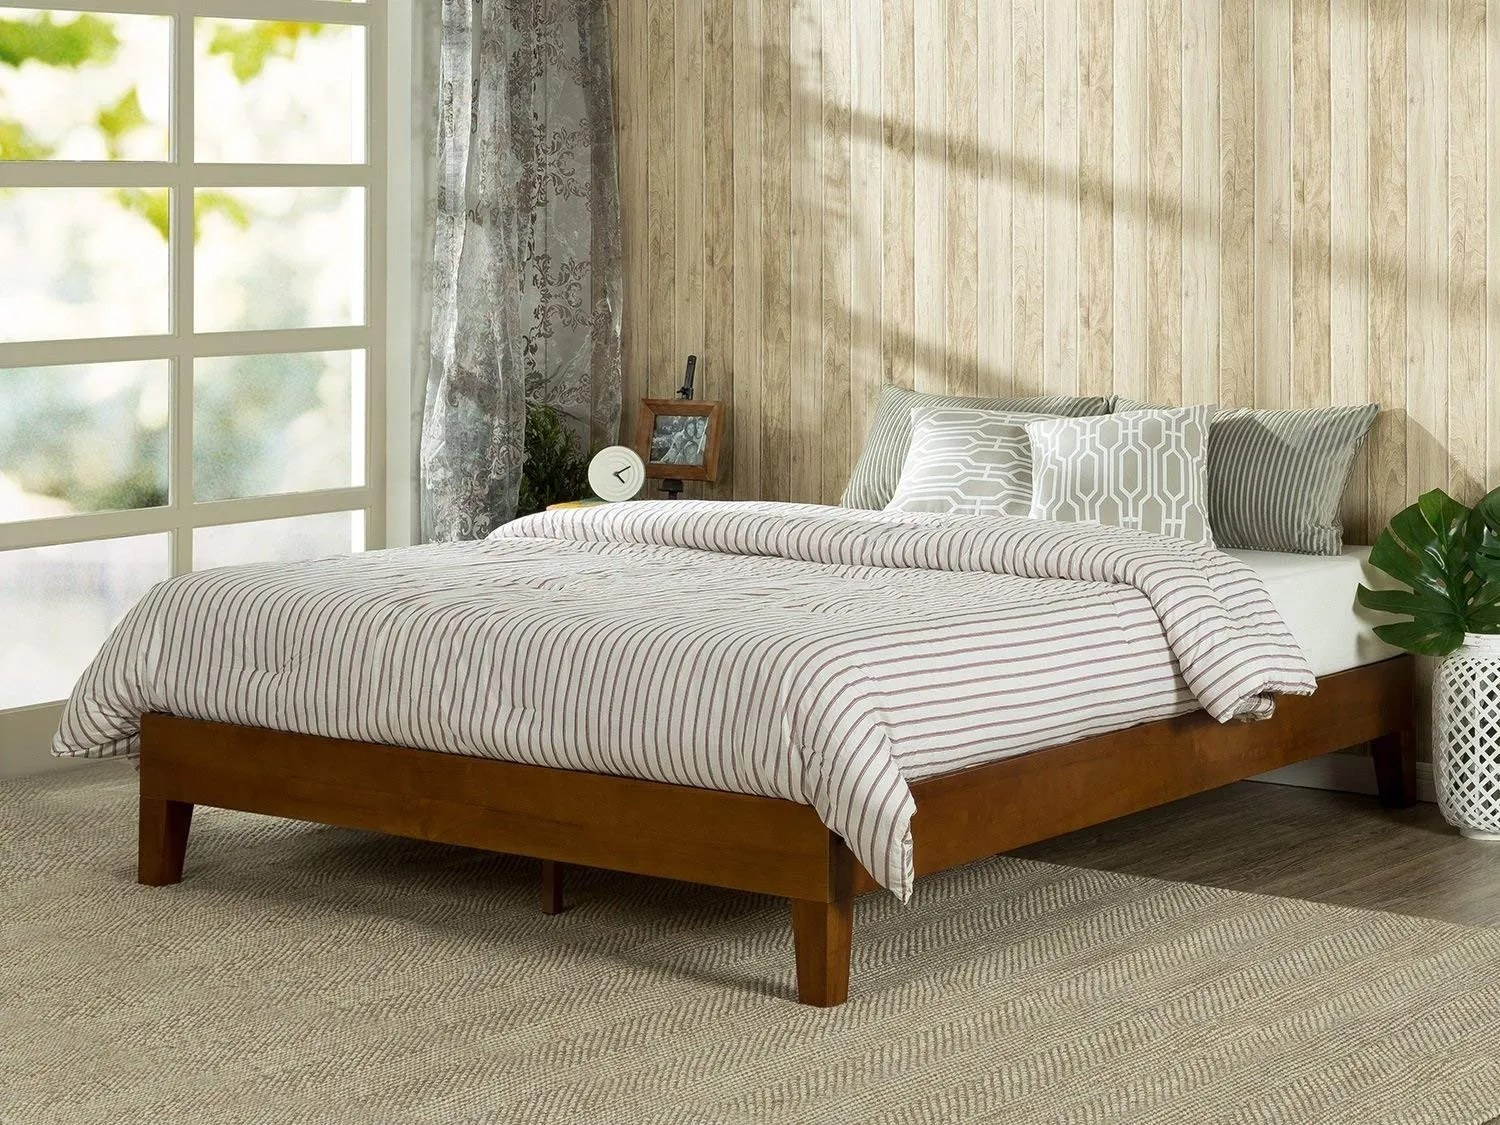 What To Hang Over Bed In Master Bedroom